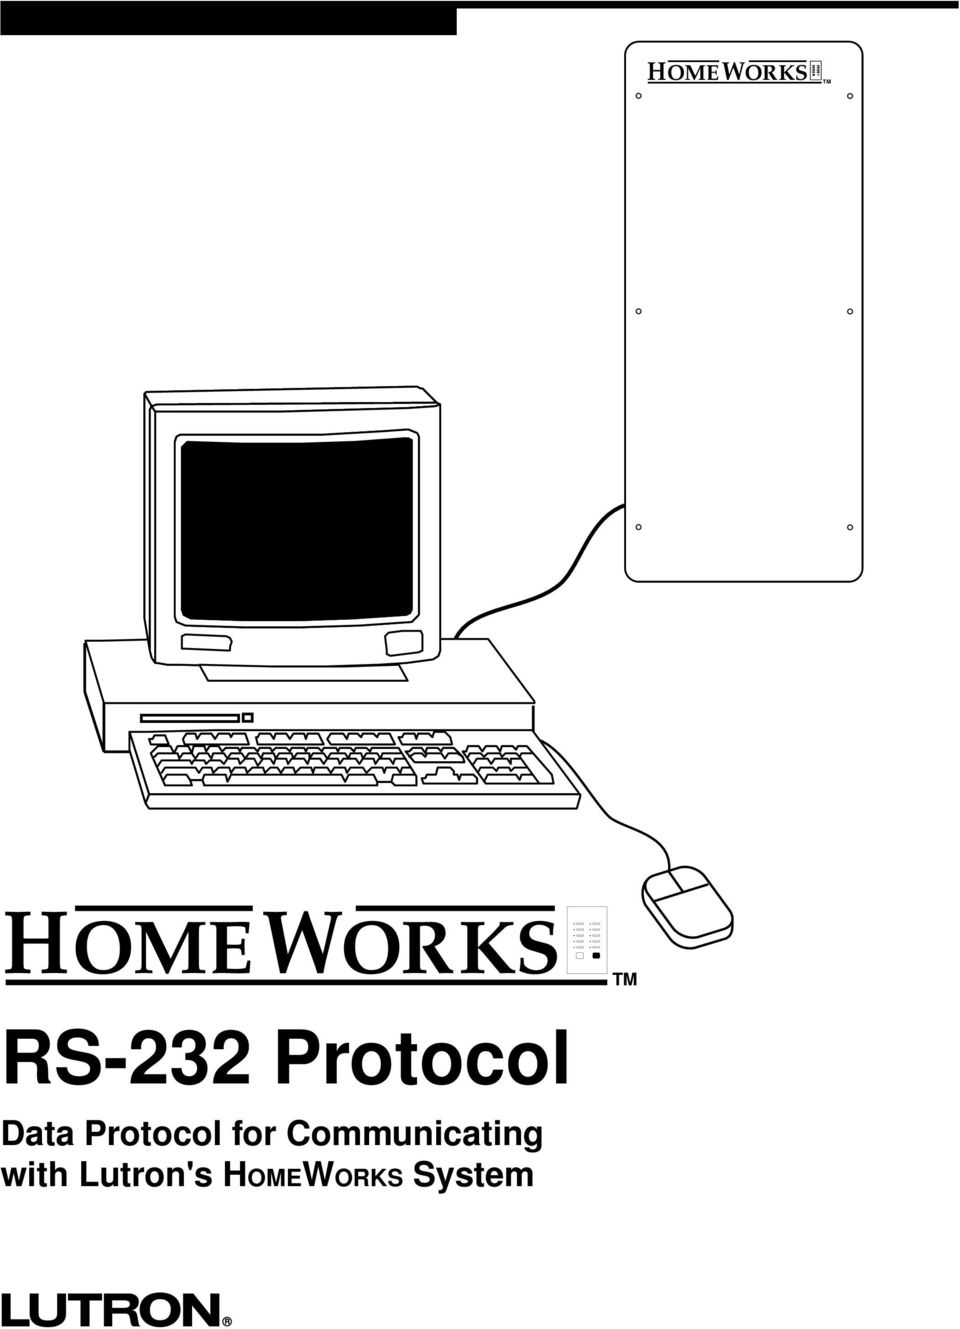 Homeworks Rs 232 Protocol Data For Communicating With Lutron Wiring Diagram